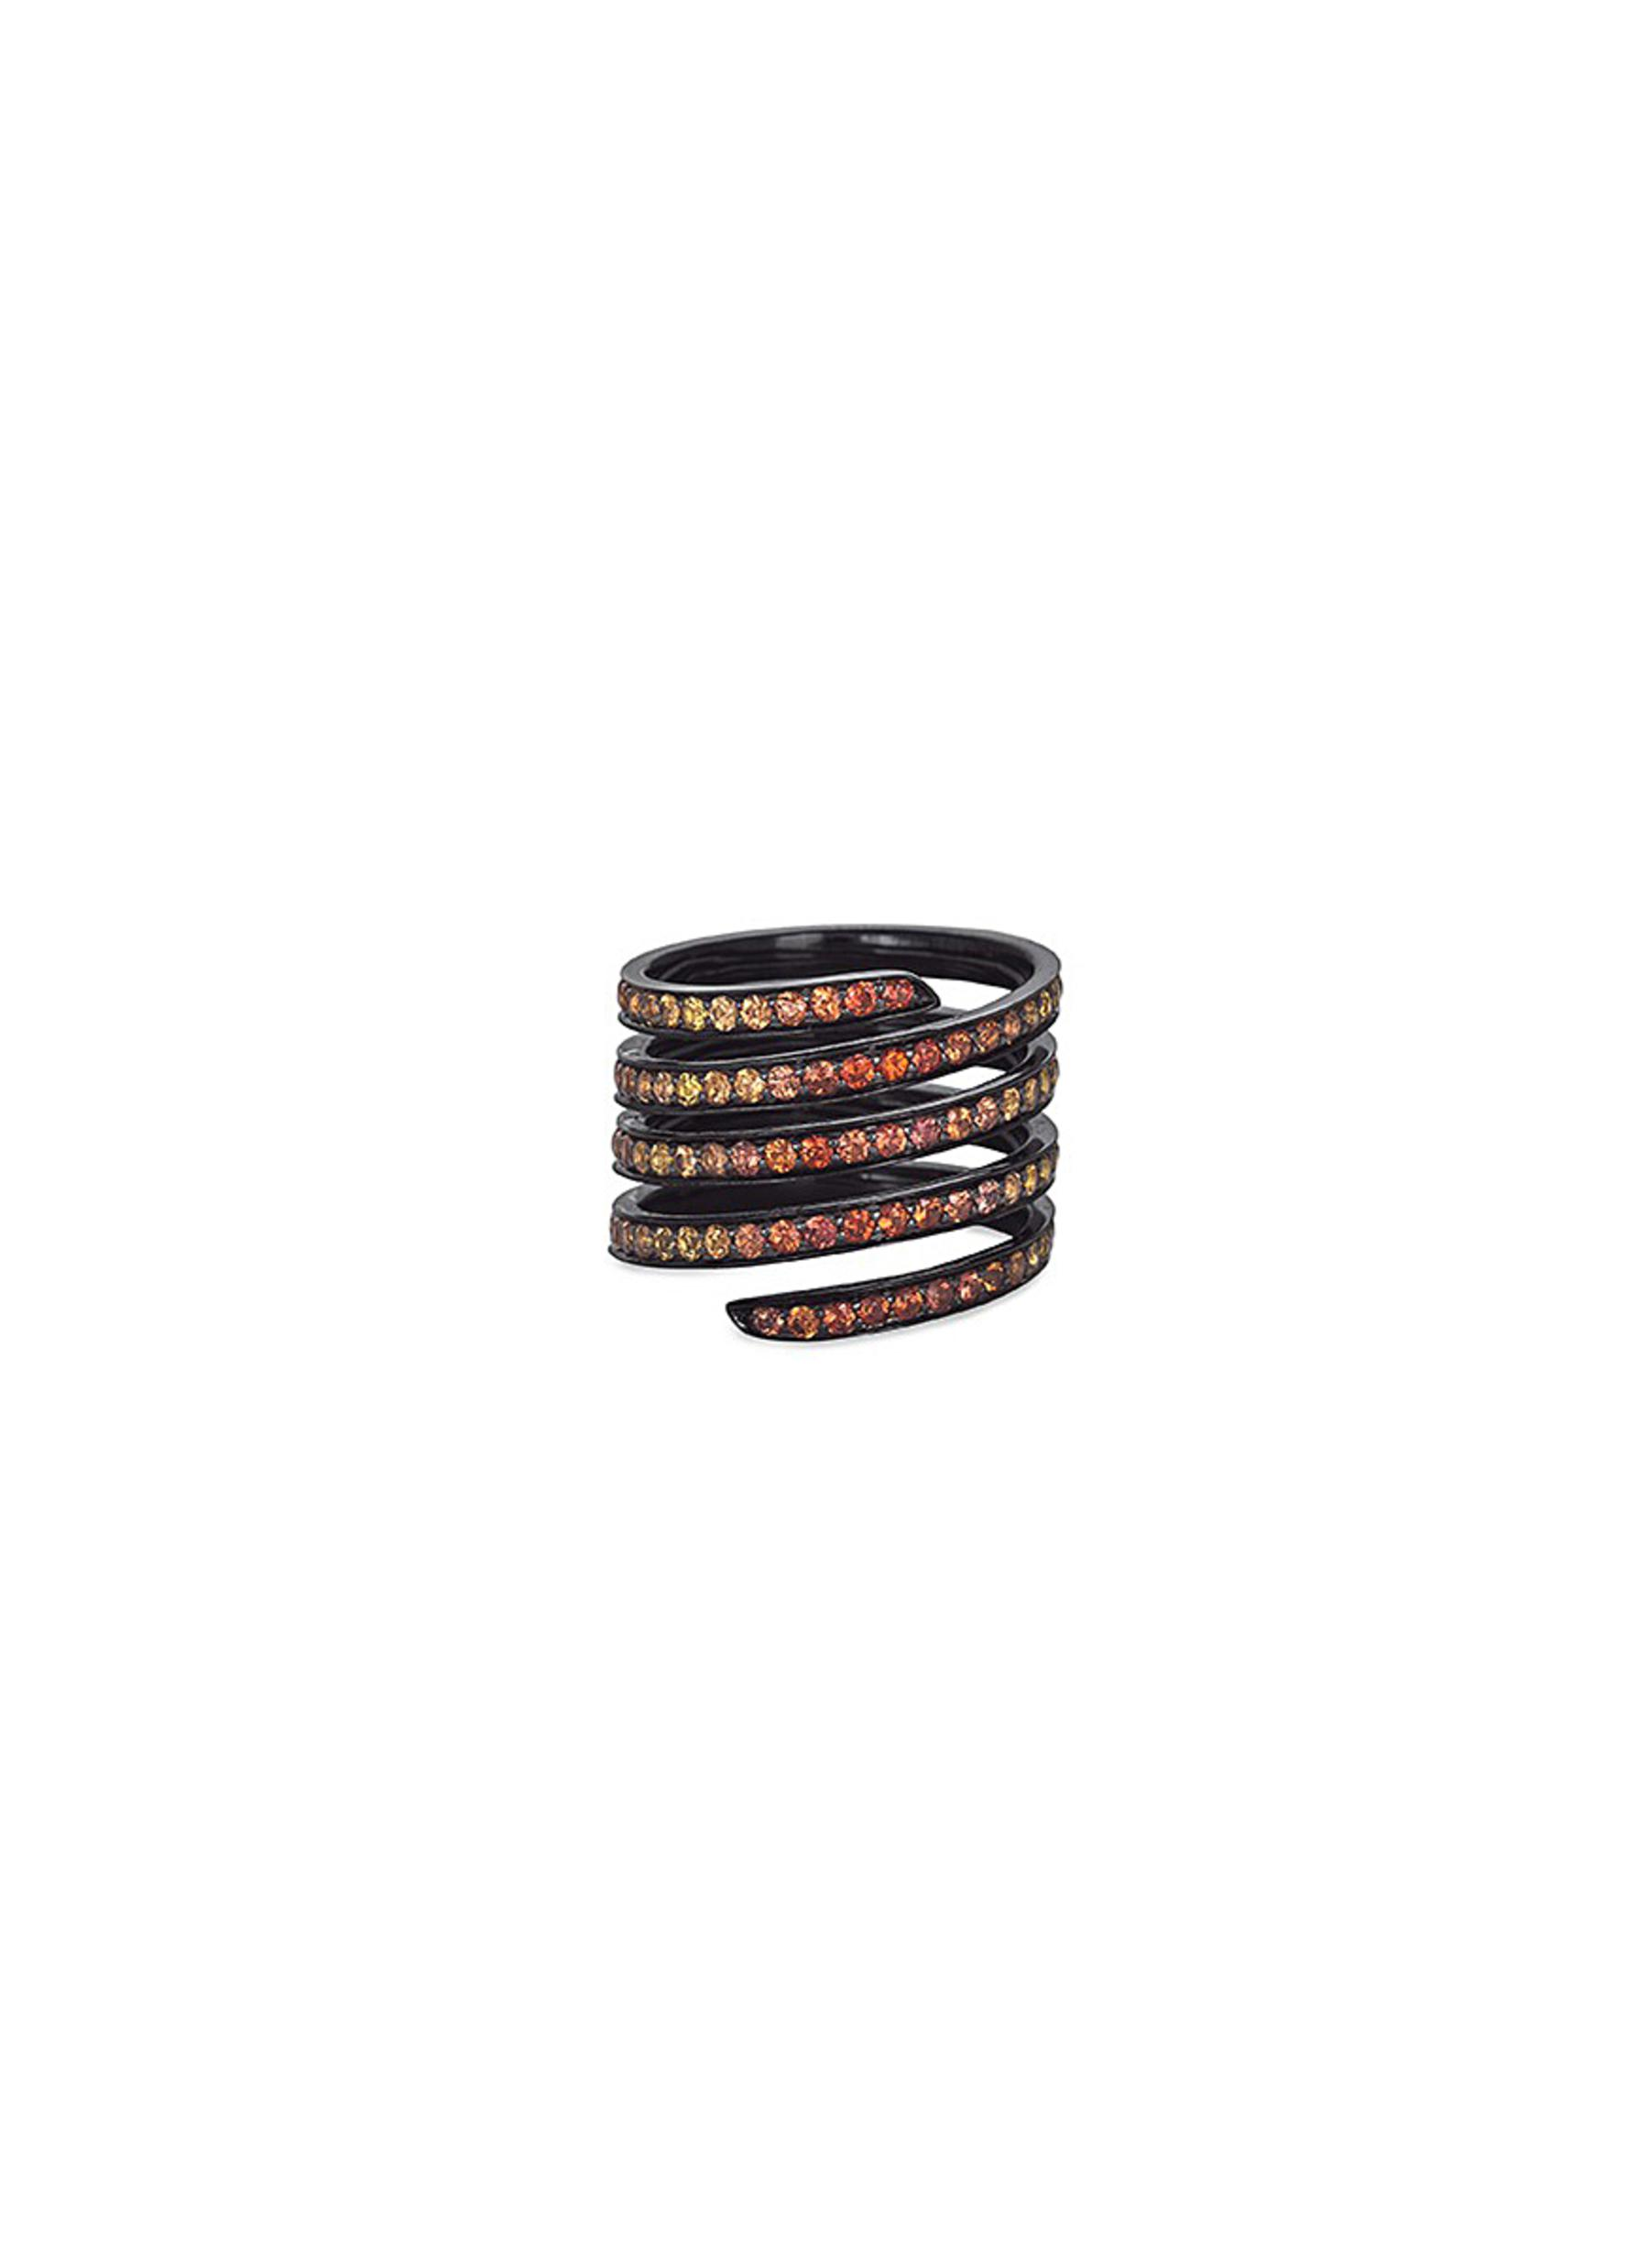 LYNN BAN 'Ombre Pave Coil' Sapphire Rhodium Silver Ring in Orange